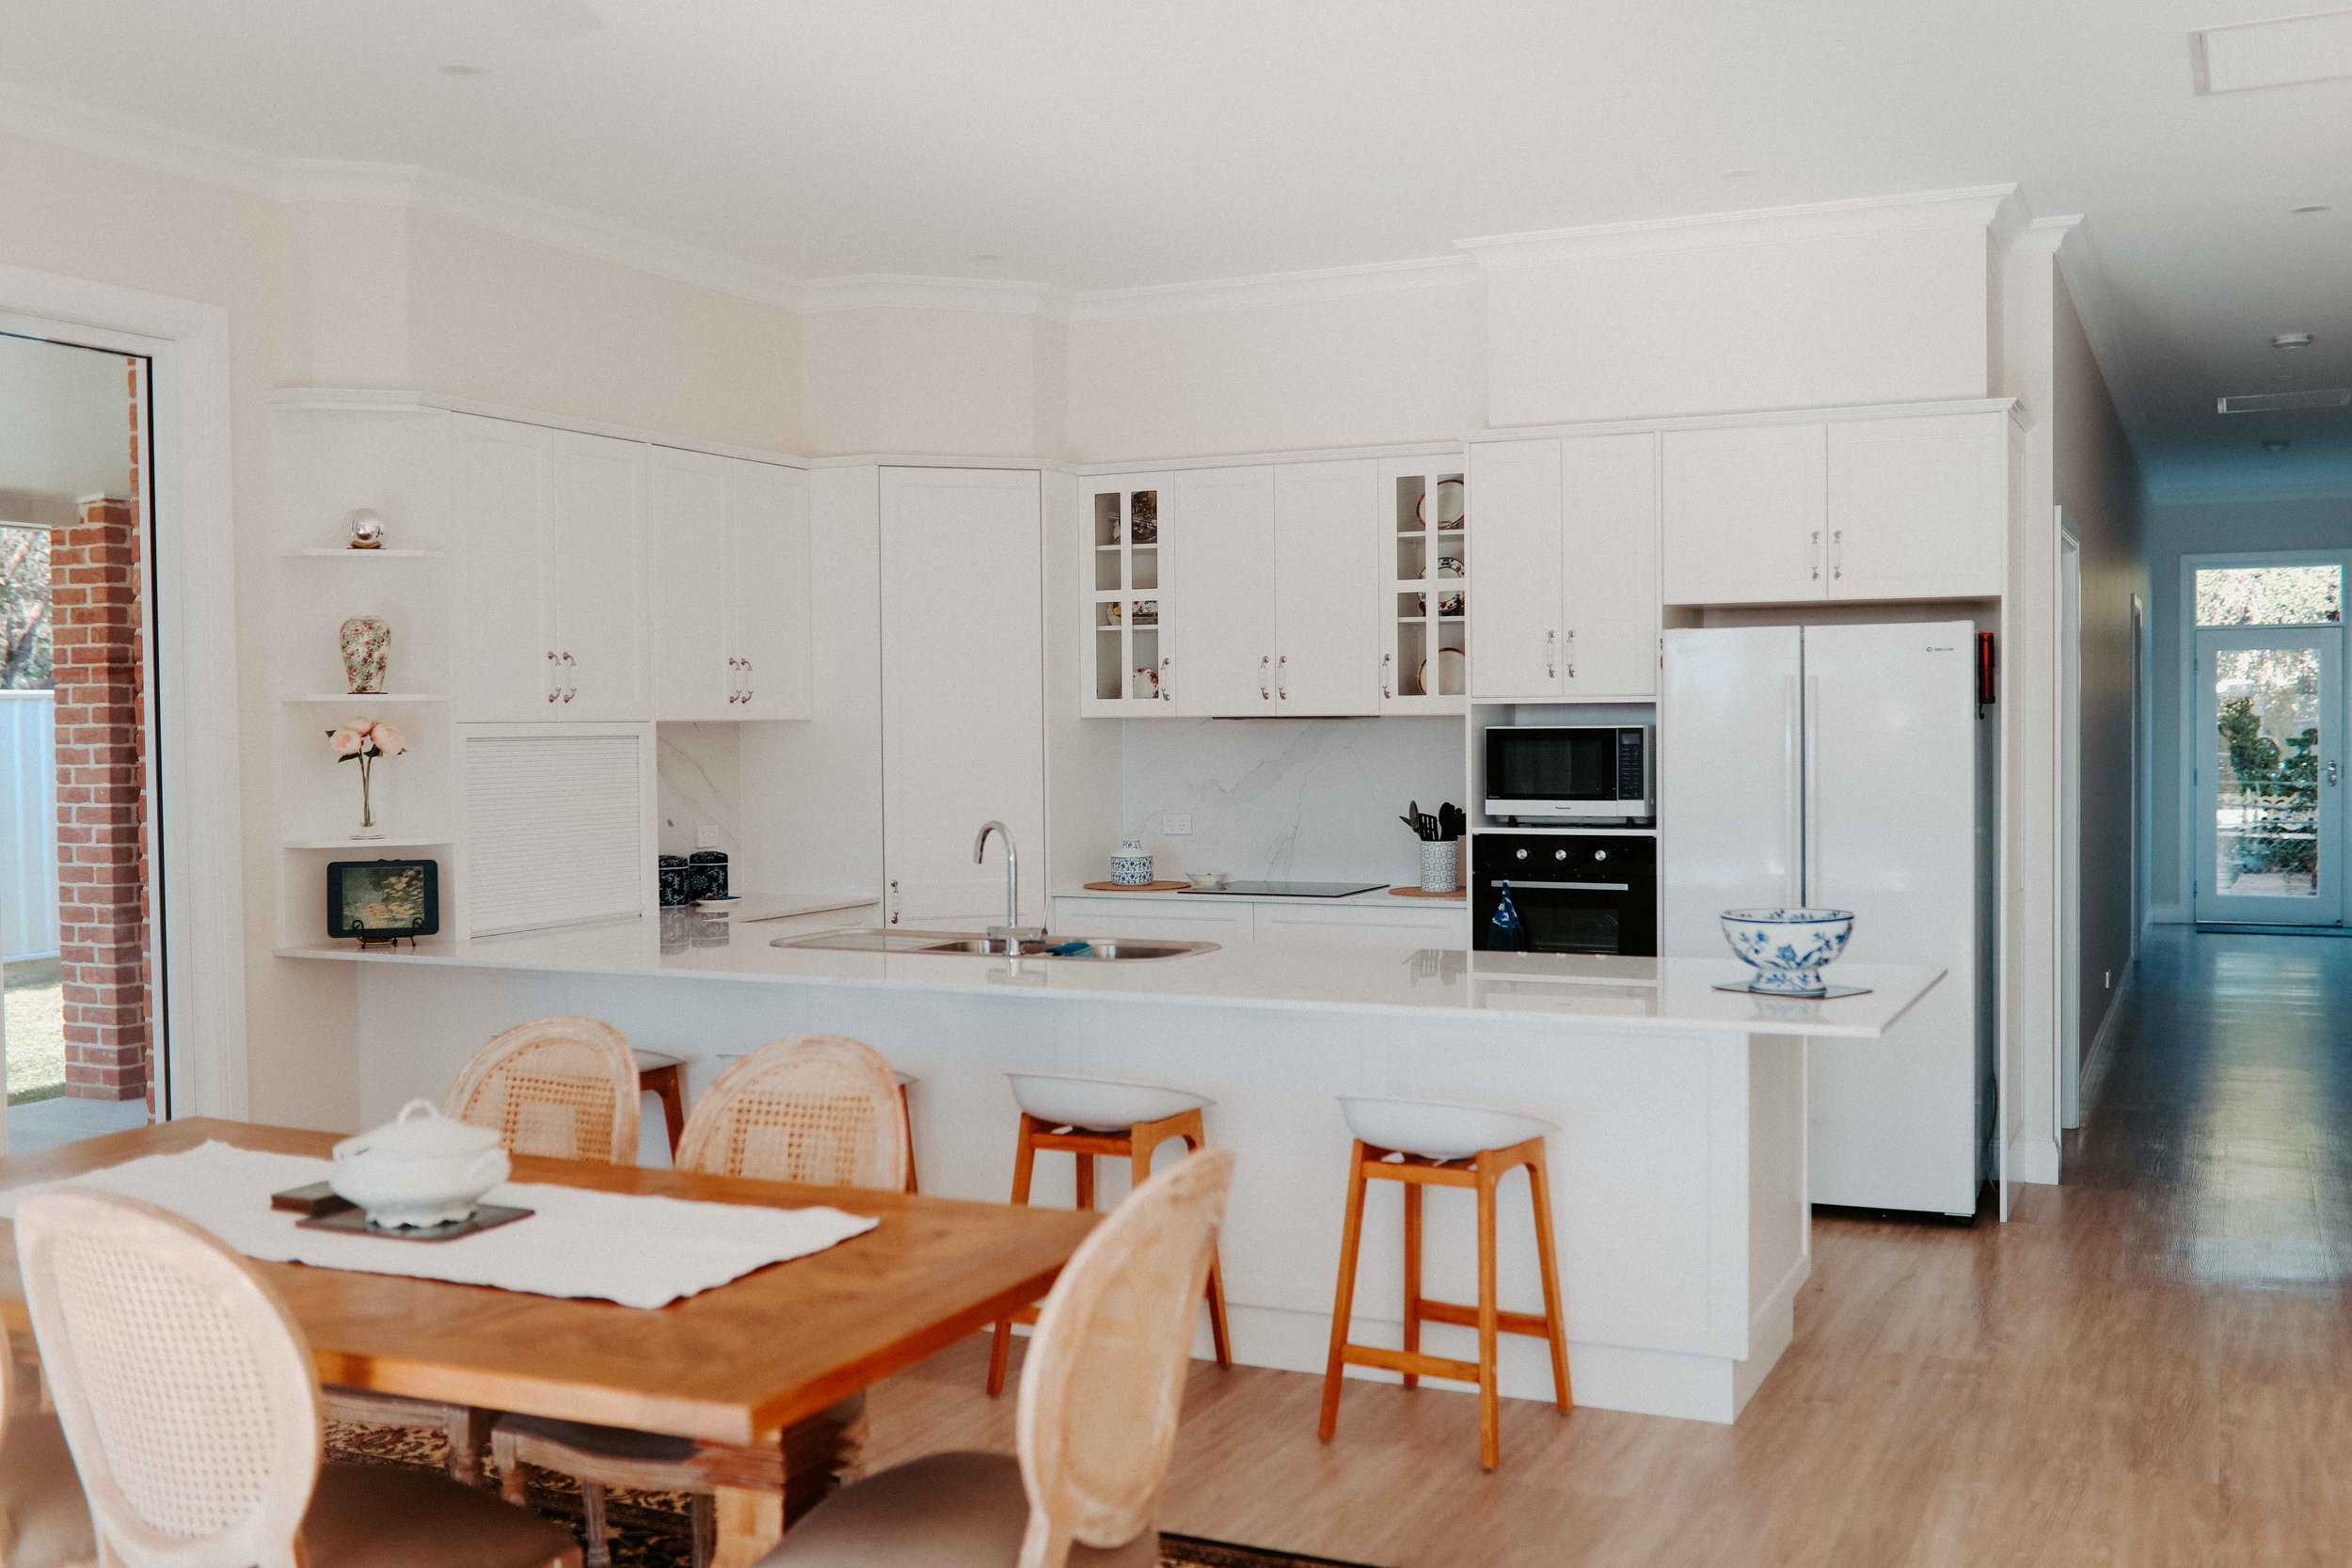 Heritage cross Hamptons style kitchen and dining